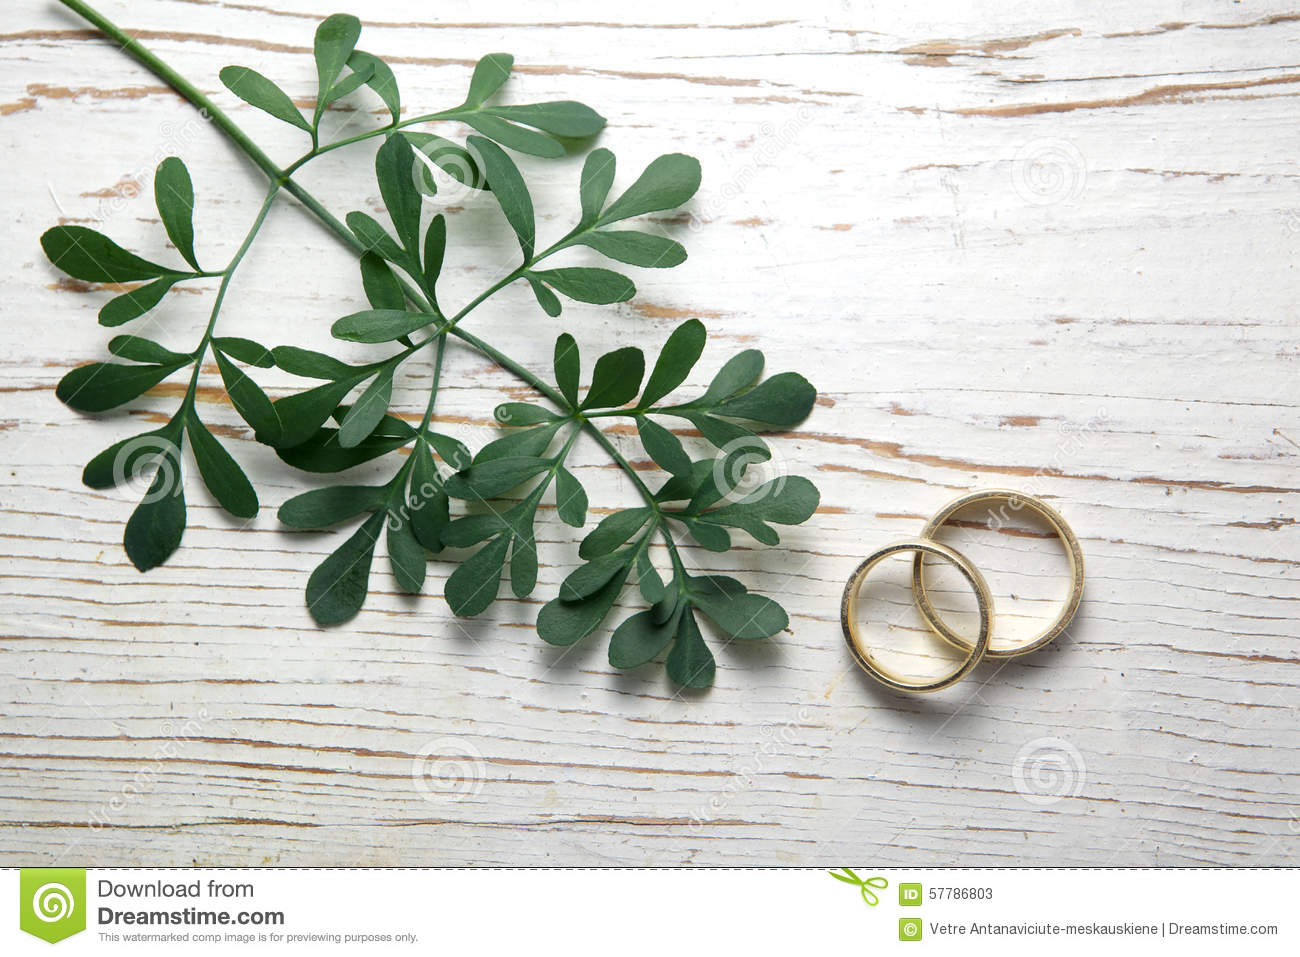 Garden Bush: Rue Herb Plant. Lithuanian Traditional Plant Stock Photo